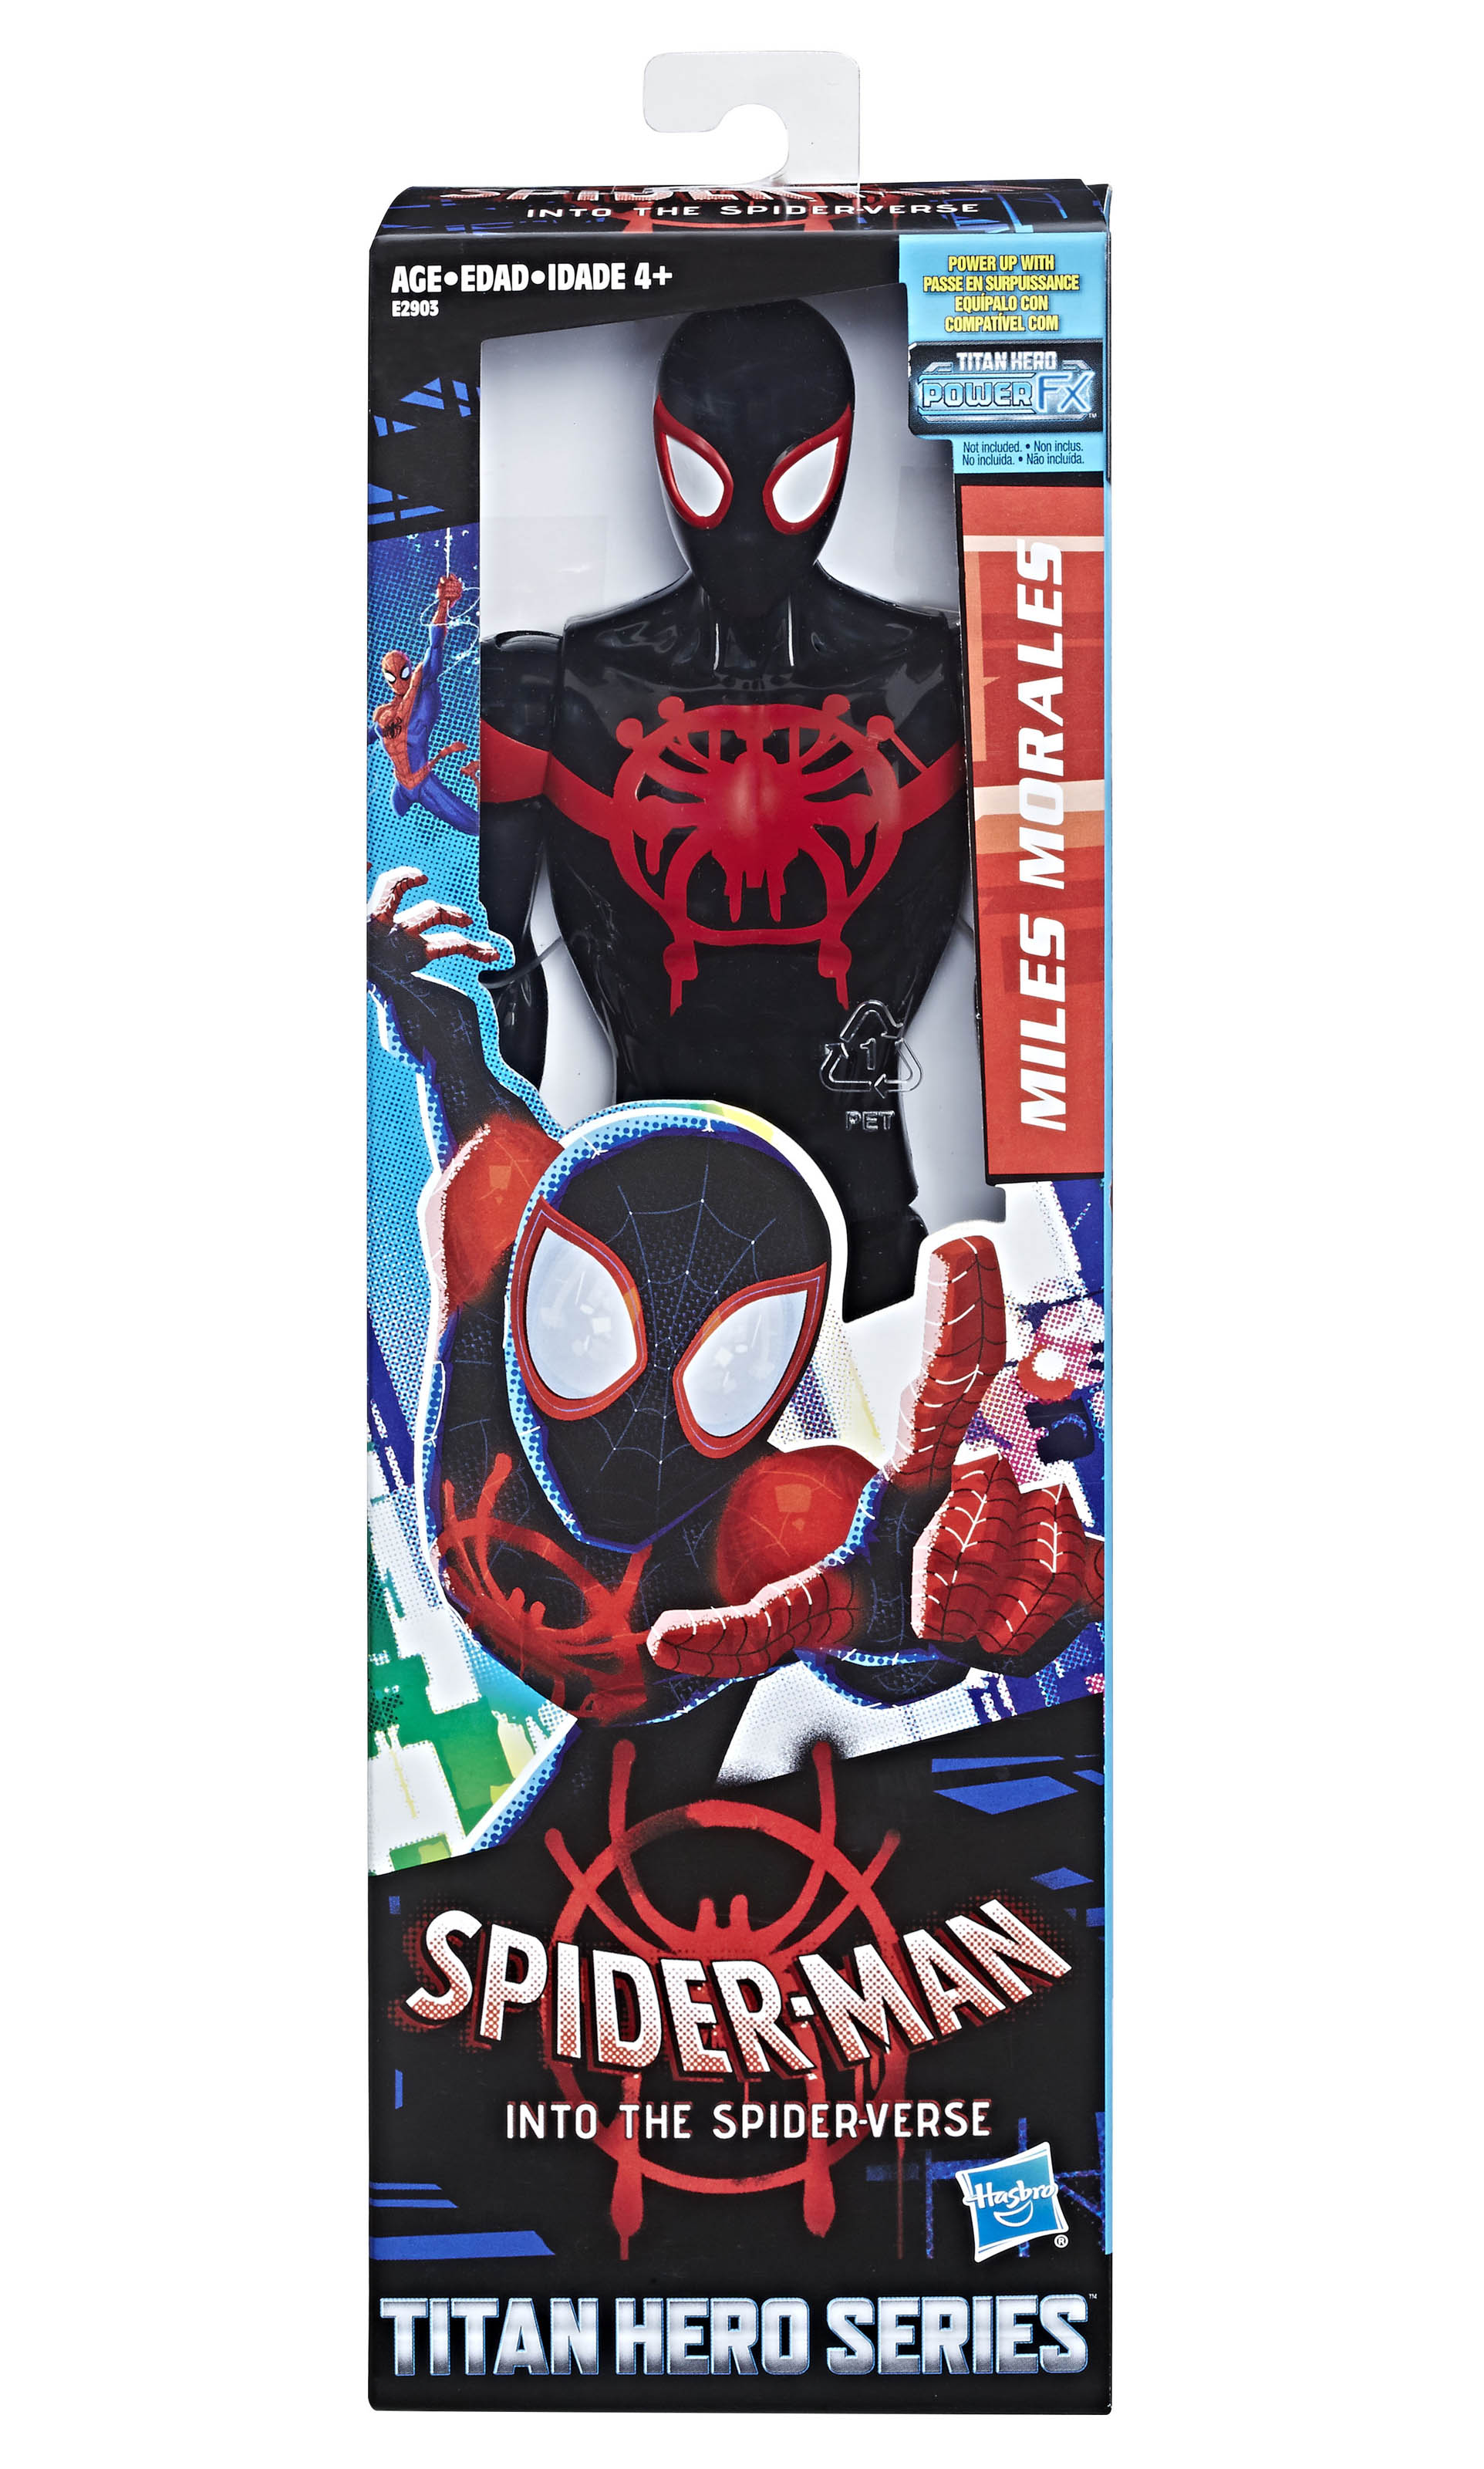 Press Release Hasbro Spider Man Into The Spiderverse Kids Toys Spiderman Marvel Verse Titan Hero 12 Inch Figure In Pkg